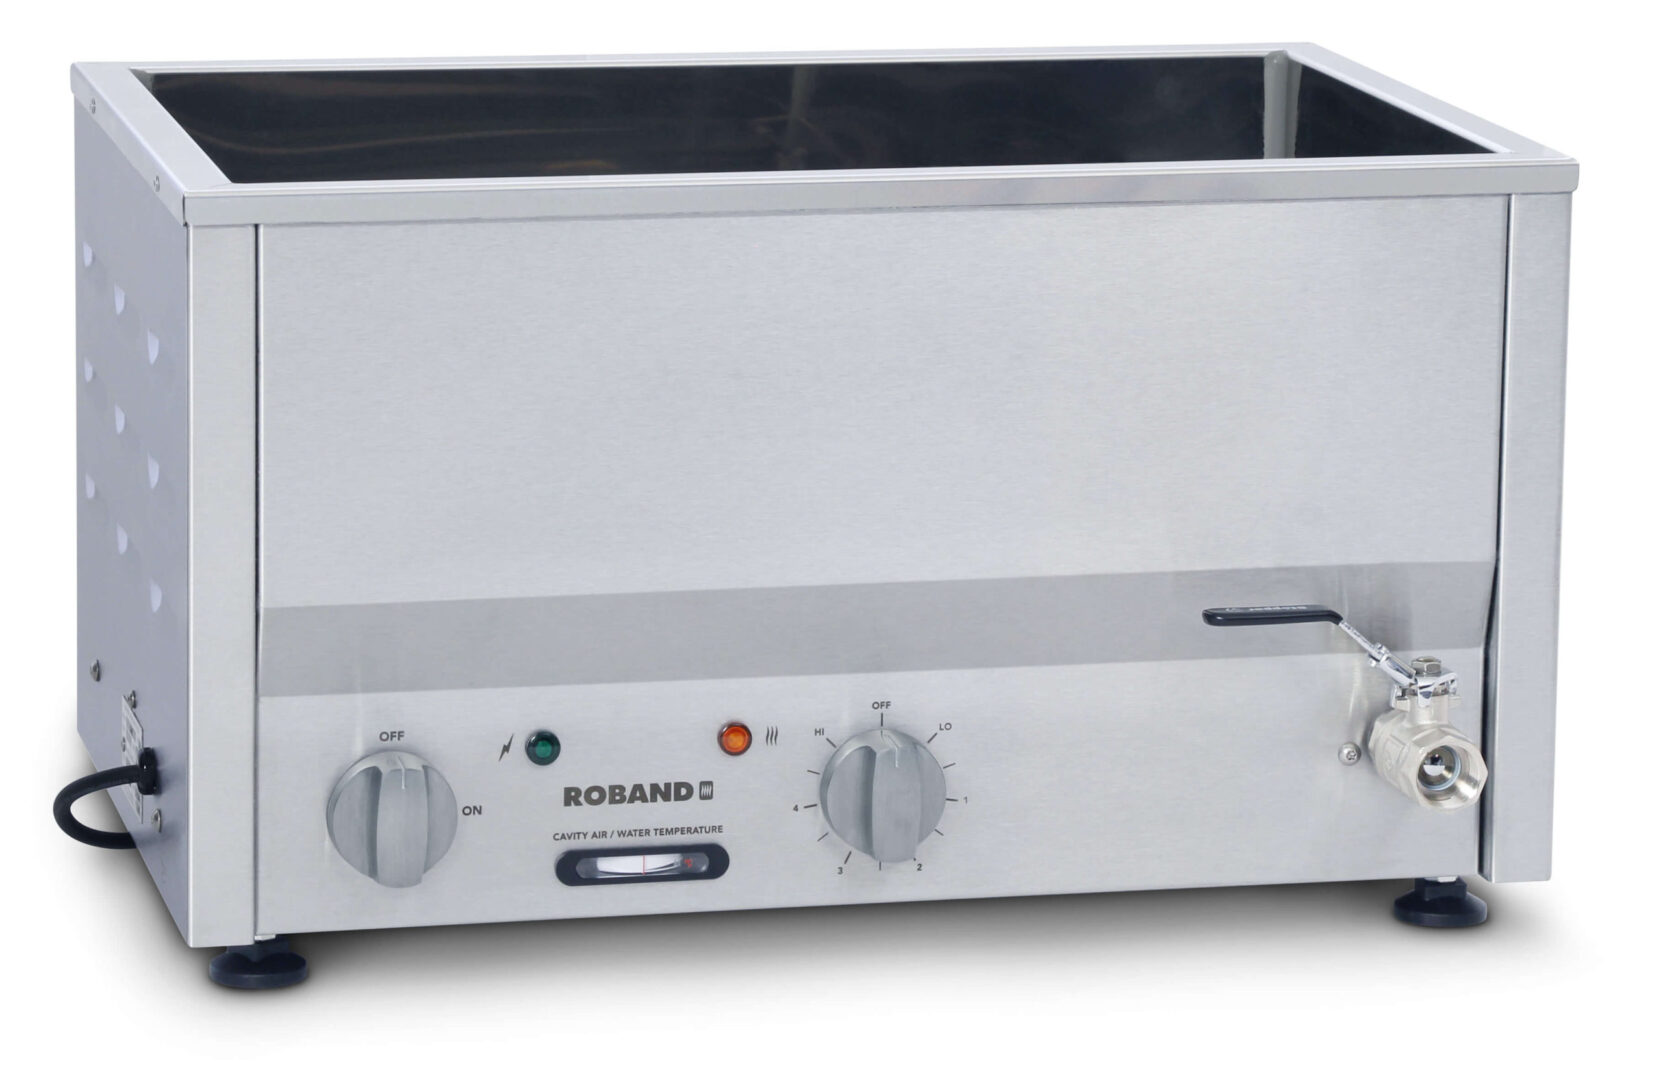 Roband BM2 Counter Top Bain Marie 2 x 1/2 size, pans not included